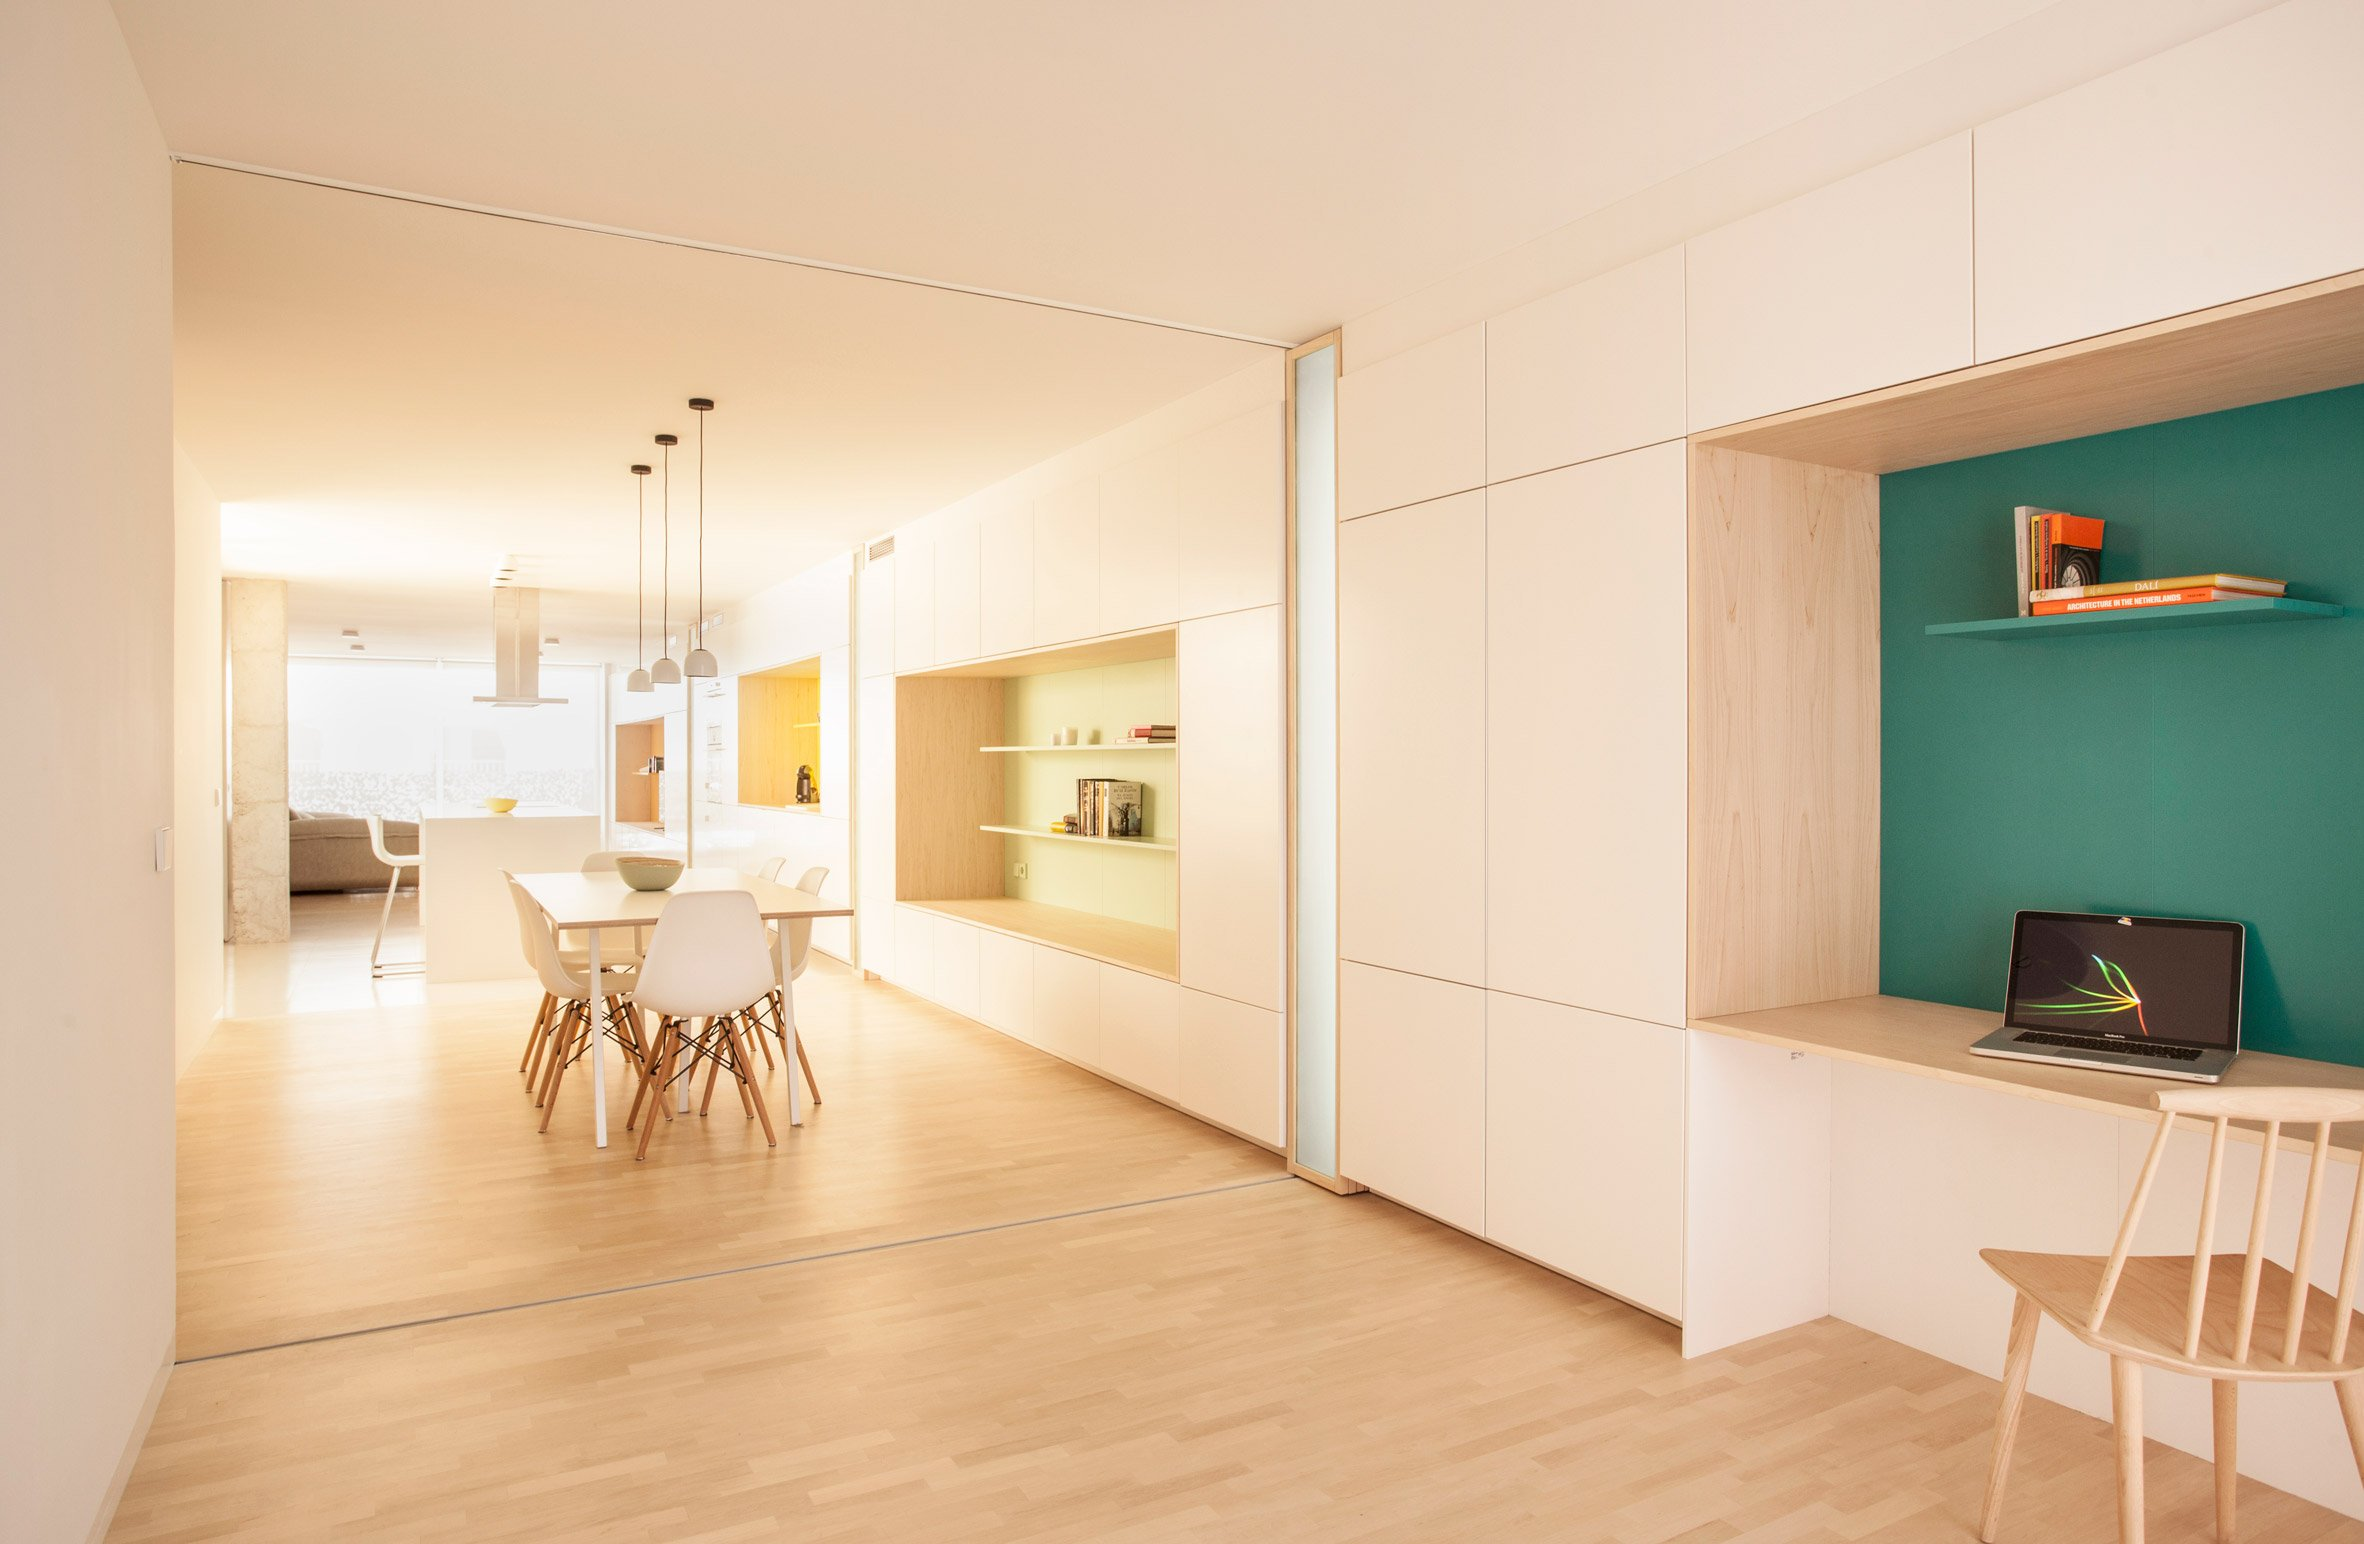 RL House Renovation by Diego López Fuster Arquitectura